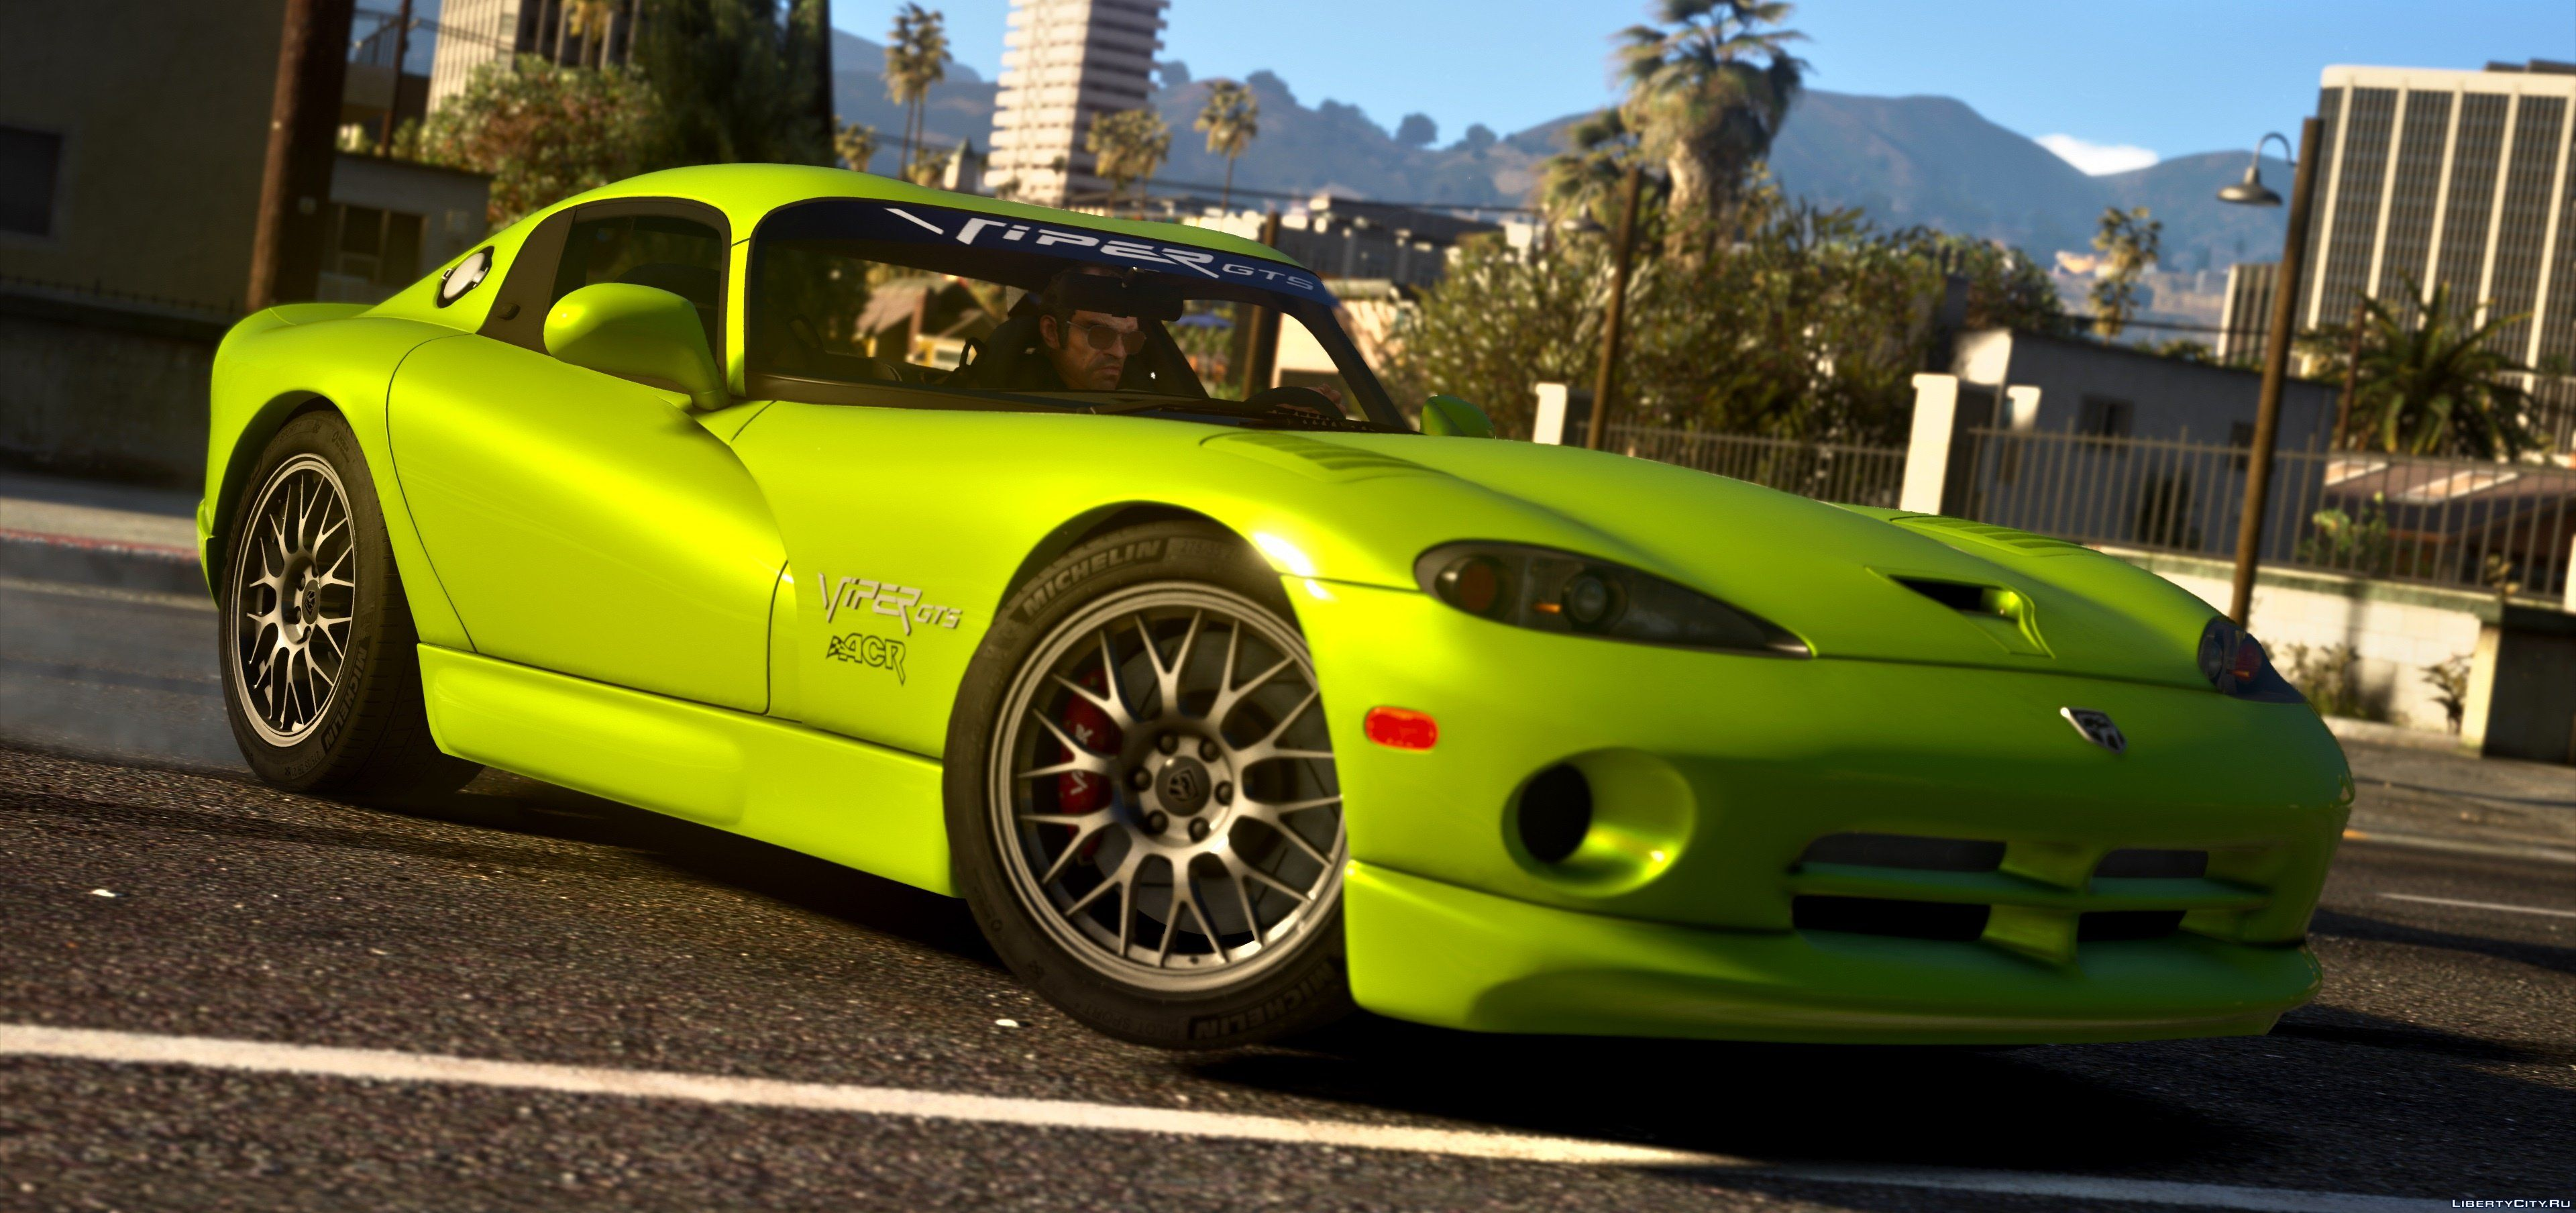 1999 Dodge Viper Gts Acr Add On Replace Tuning Template 1 4 For Gta 5